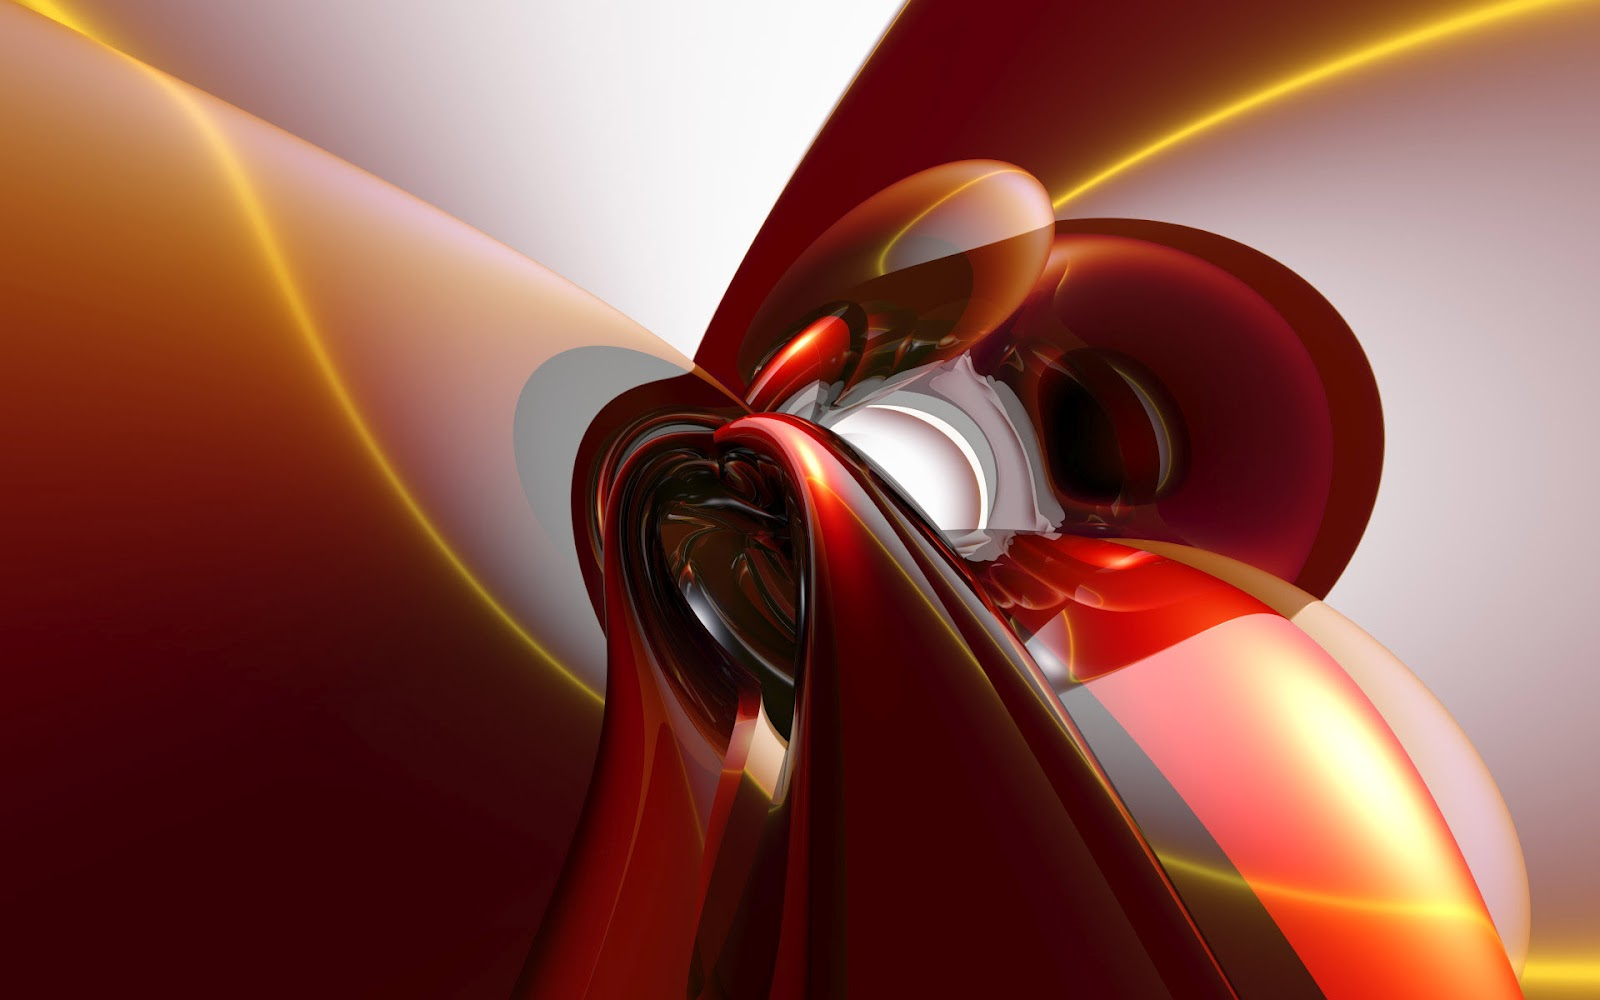 http://2.bp.blogspot.com/-AcipOQ5kC1g/T9ScHqZrtBI/AAAAAAAABFE/qQxL3lR6vB8/s1600/wallpaper+abstract+red+7.jpg